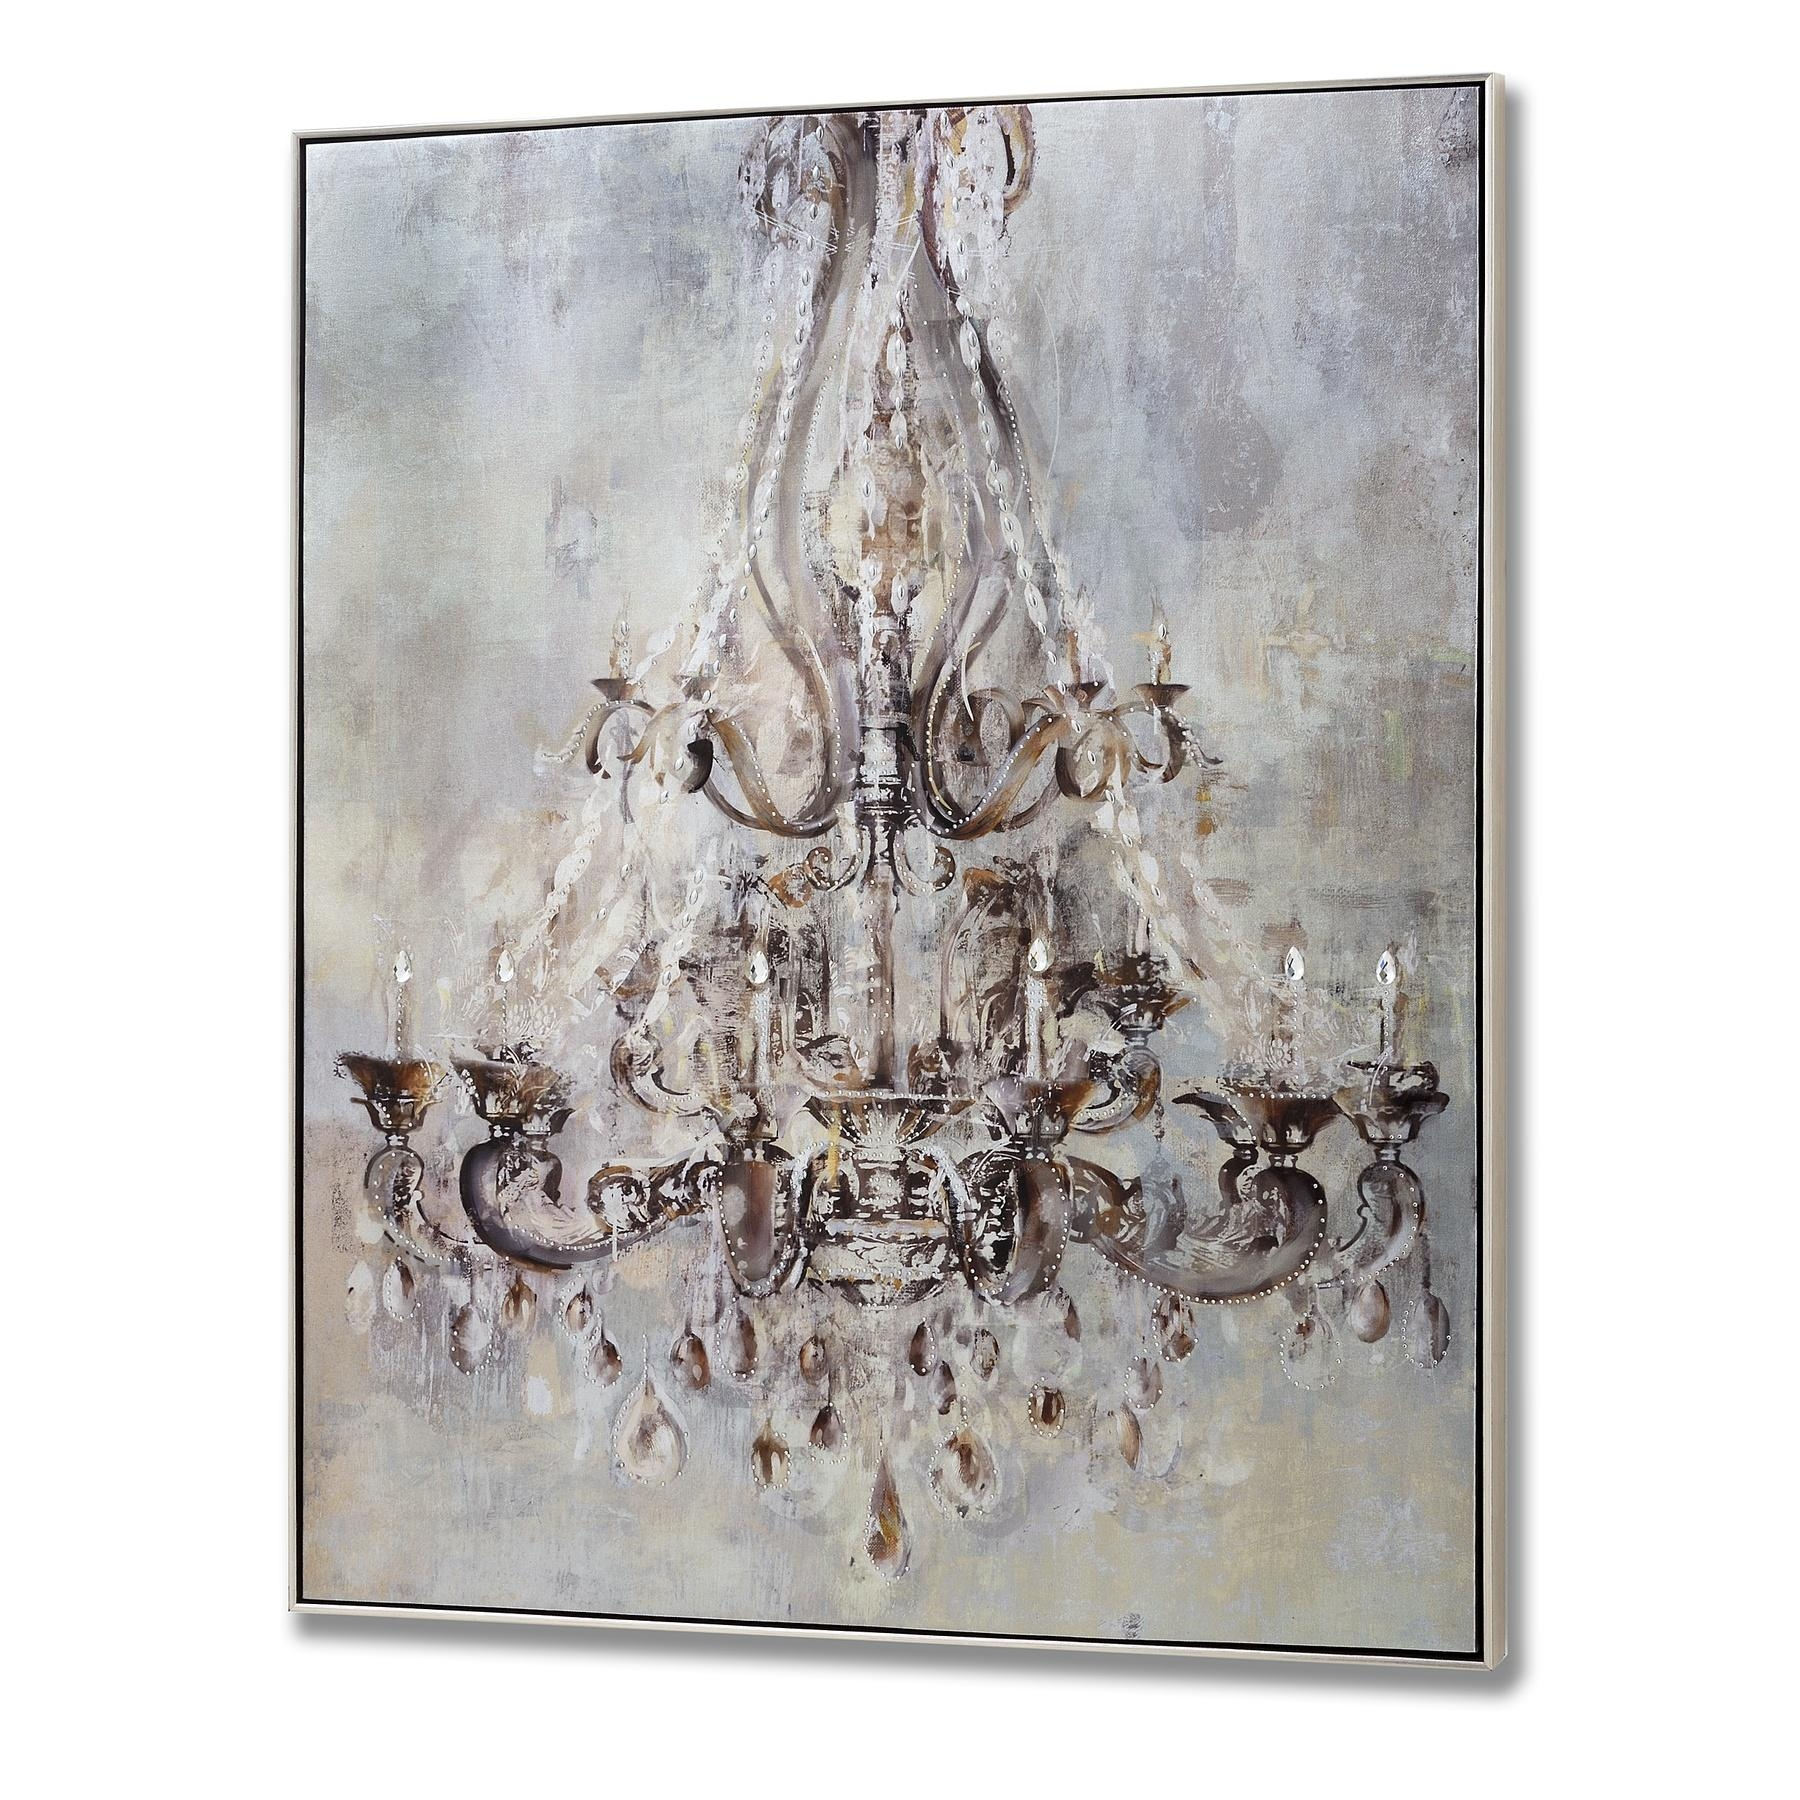 Ordinaire Featured Image Of Metal Chandelier Wall Art